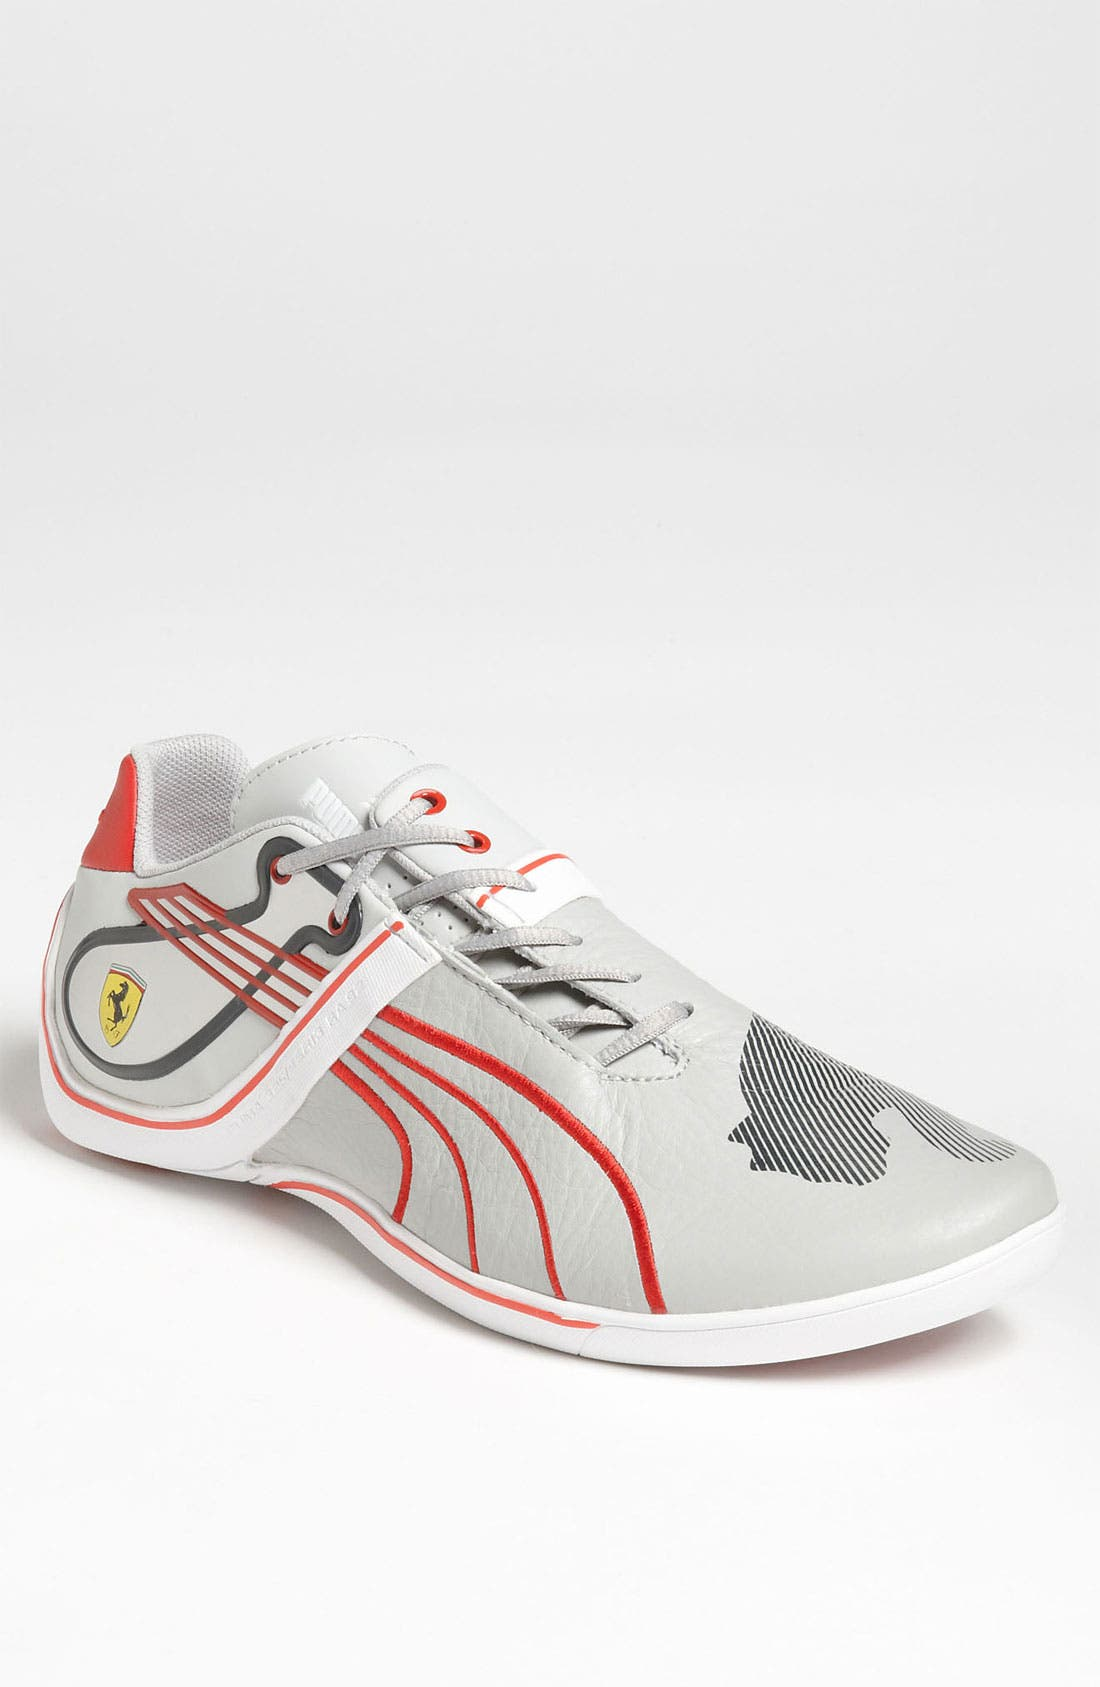 Main Image - PUMA 'Ferrari Future Cat Remix 2' Sneaker (Men)